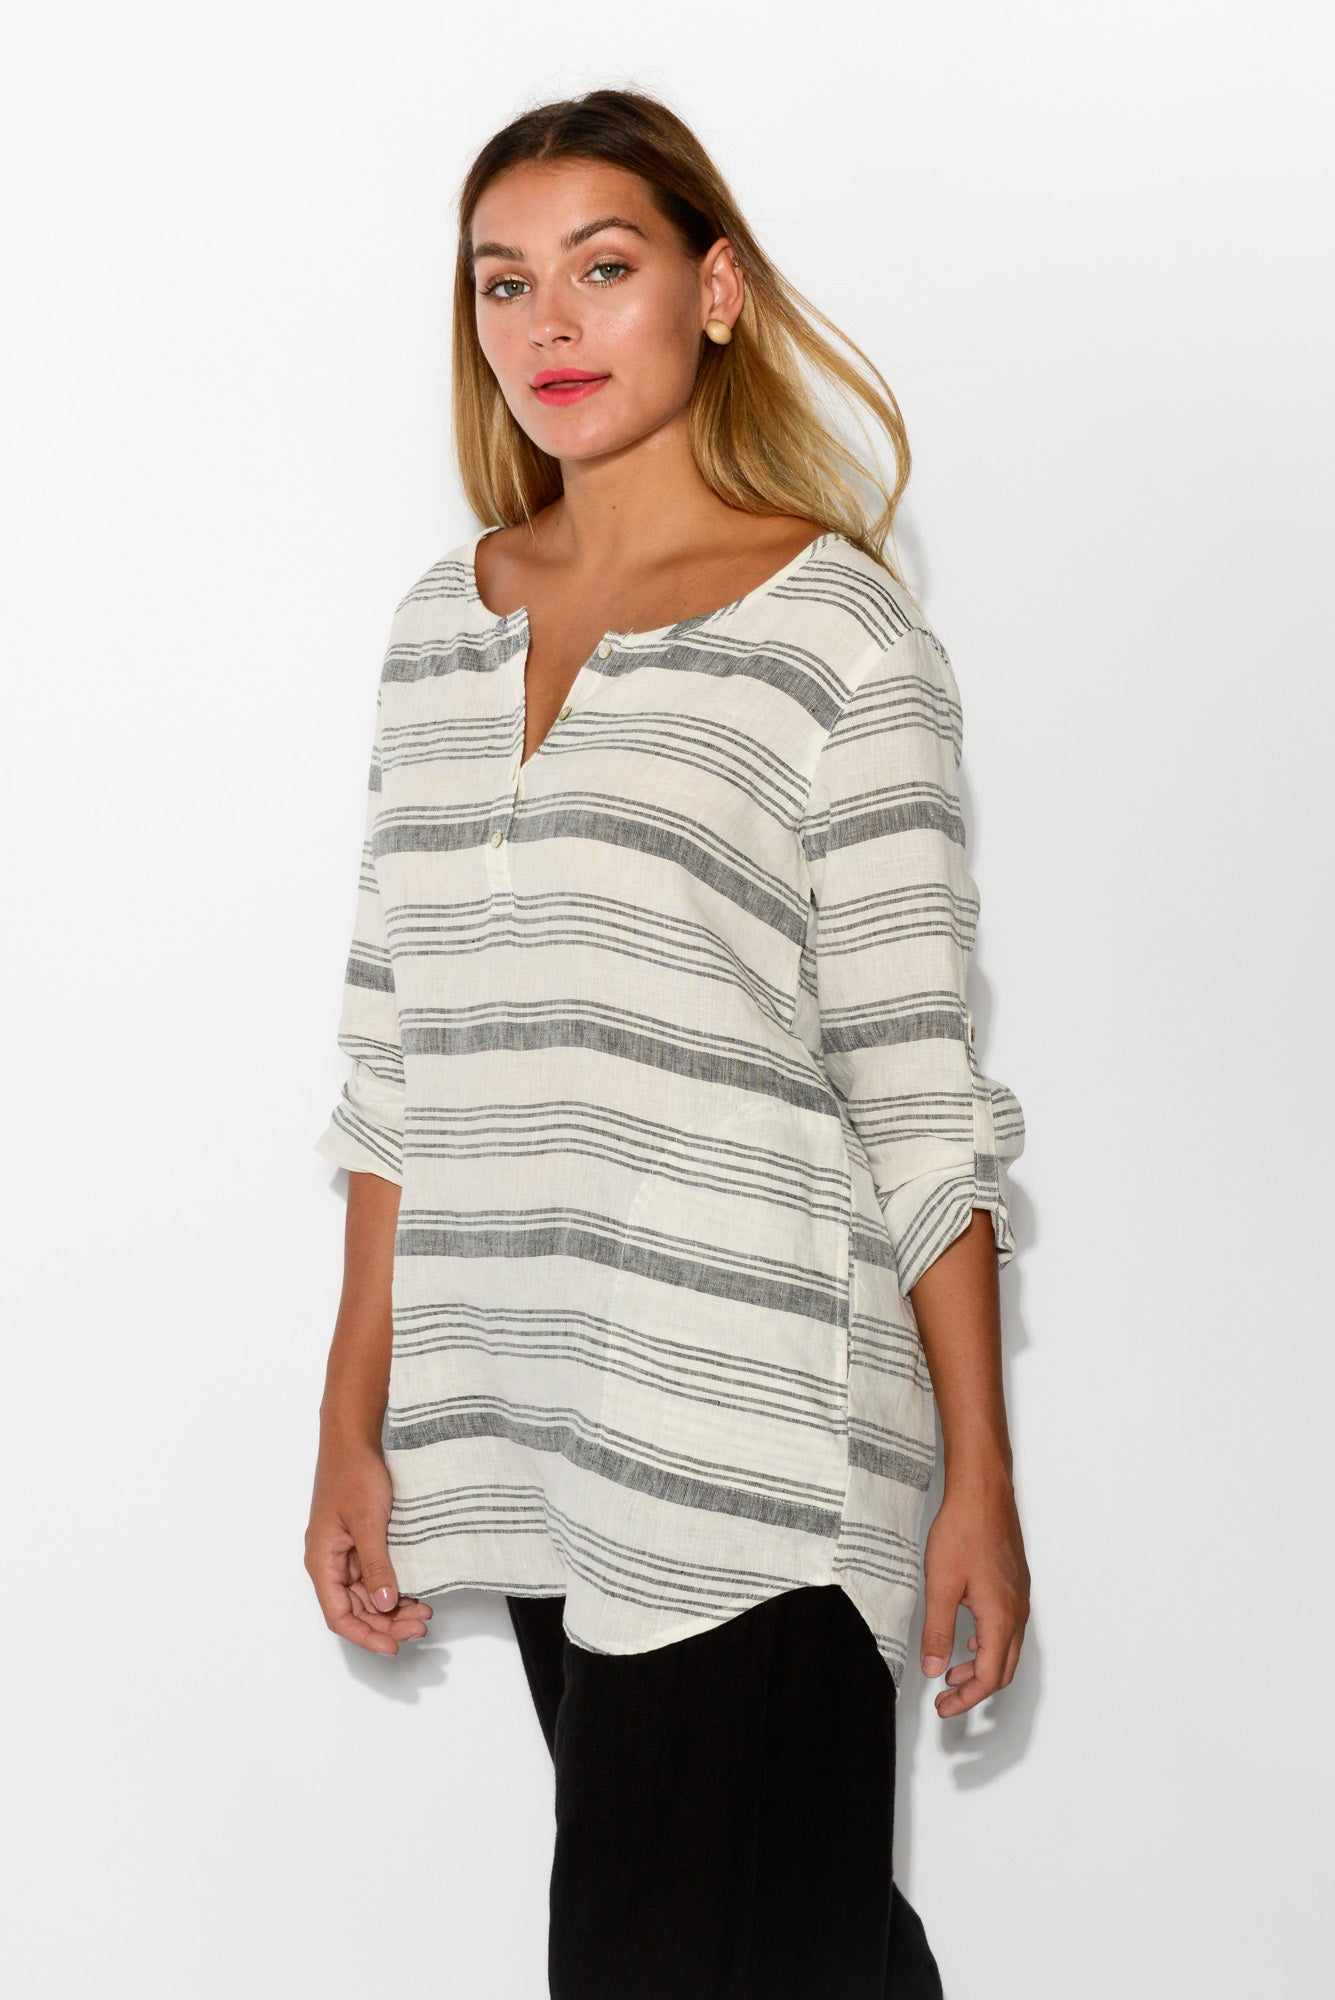 White Stripe Button Linen Tunic - Blue Bungalow